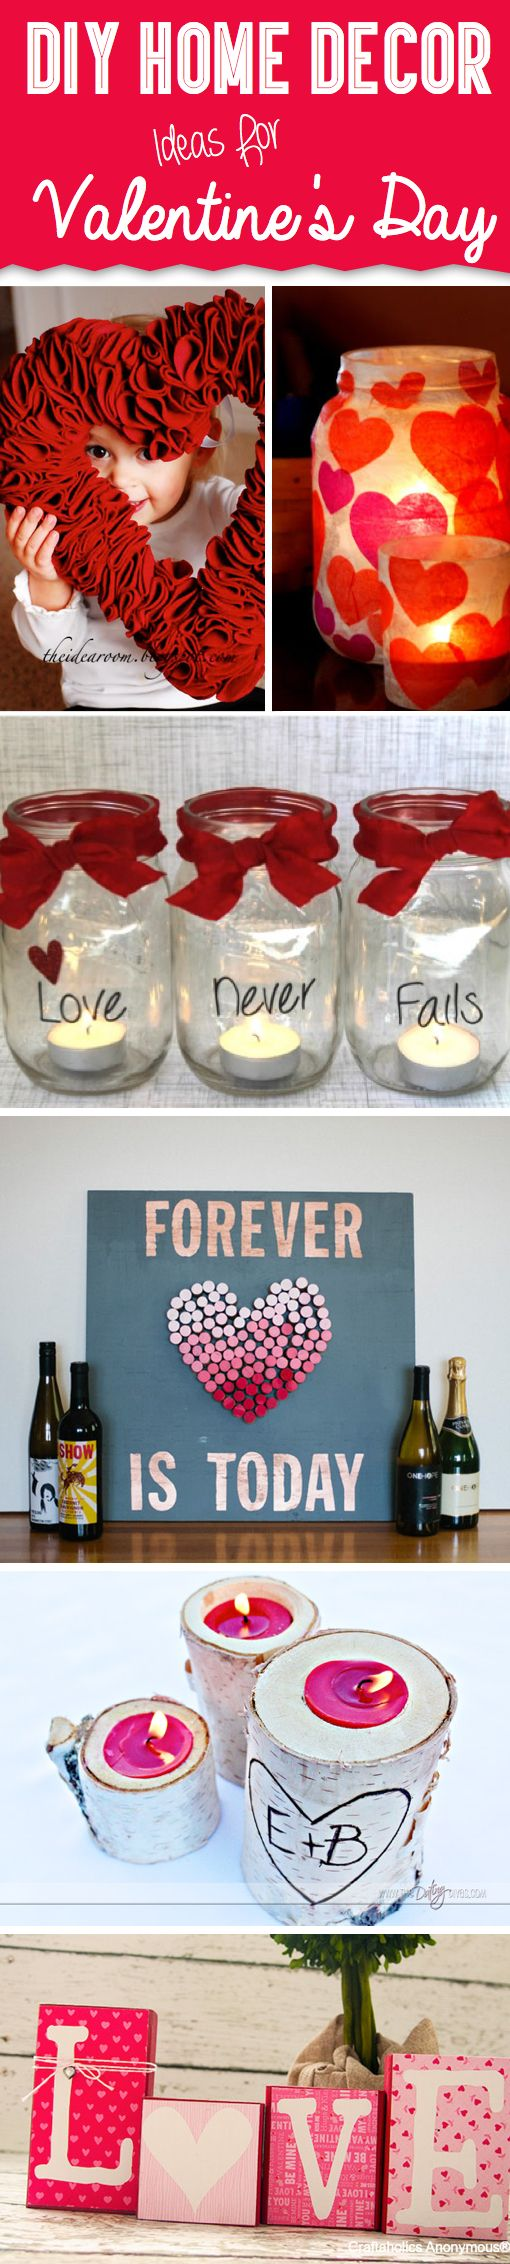 Diy Home Decor Ideas For Valentine's Day to use with Candle Impressions Flamless LED Candles.